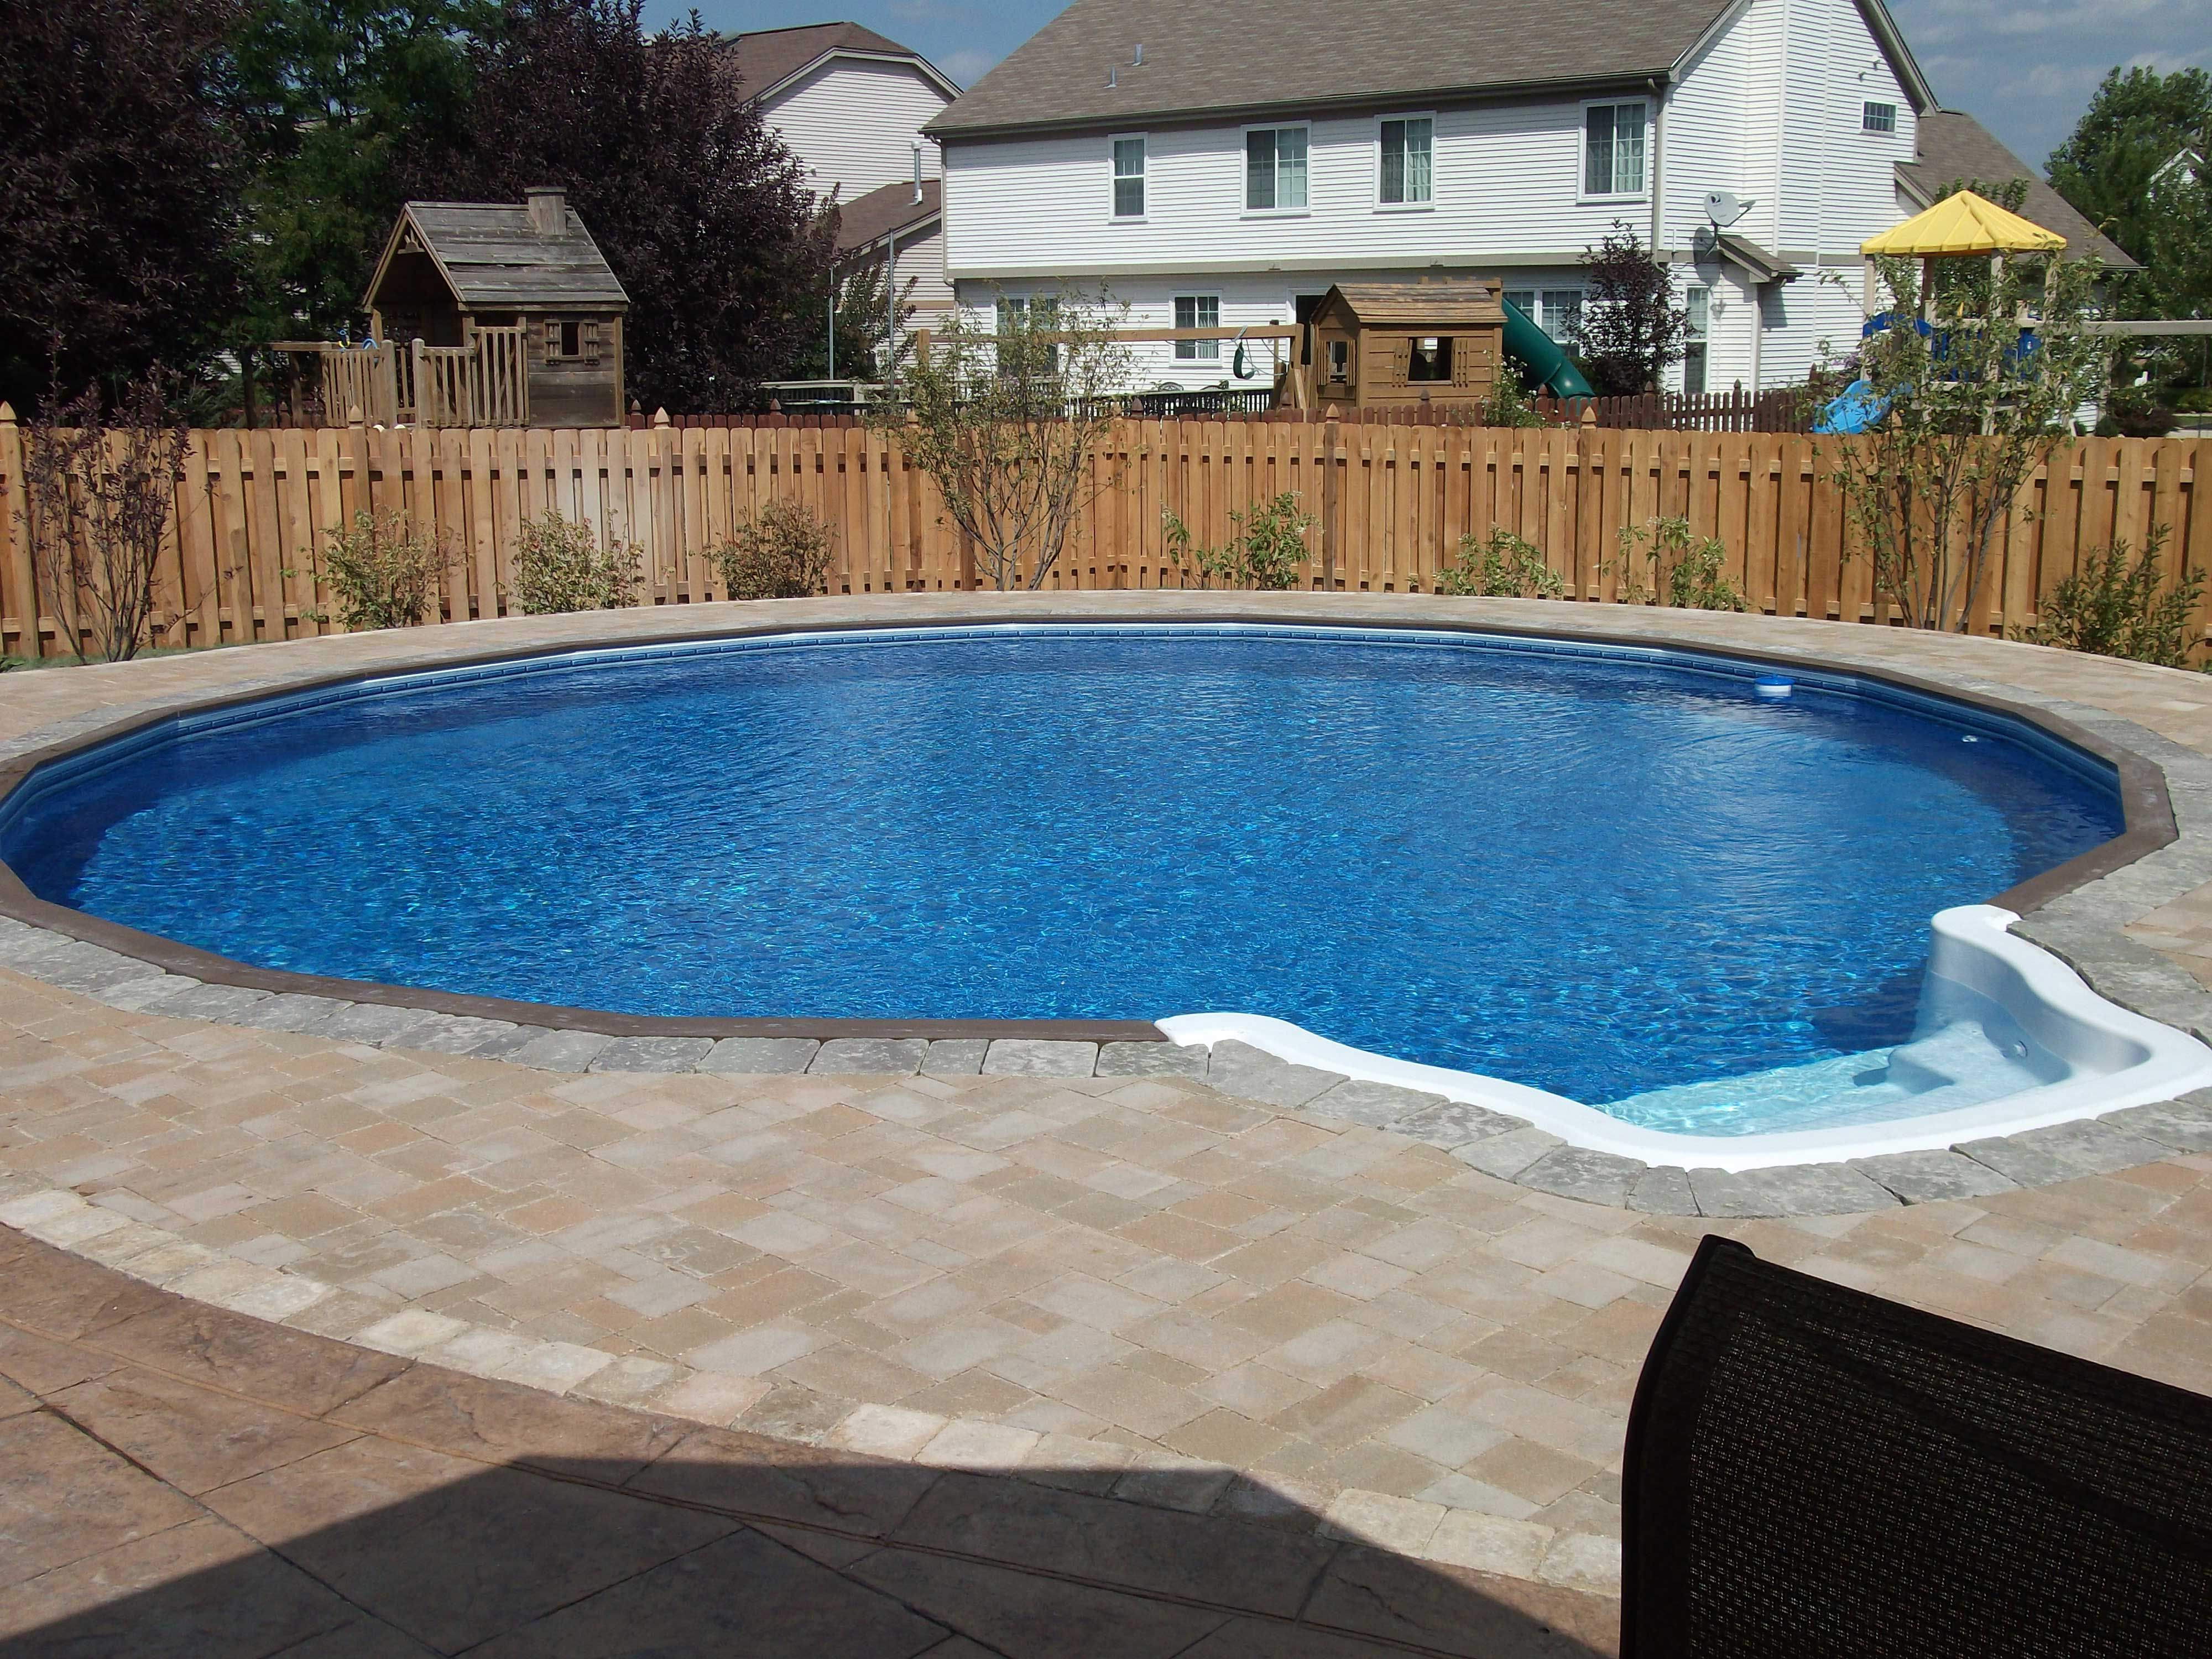 The Pool Place Chattanooga Pool And Outdoor Semi Inground Pools Round Pool In Ground Pools